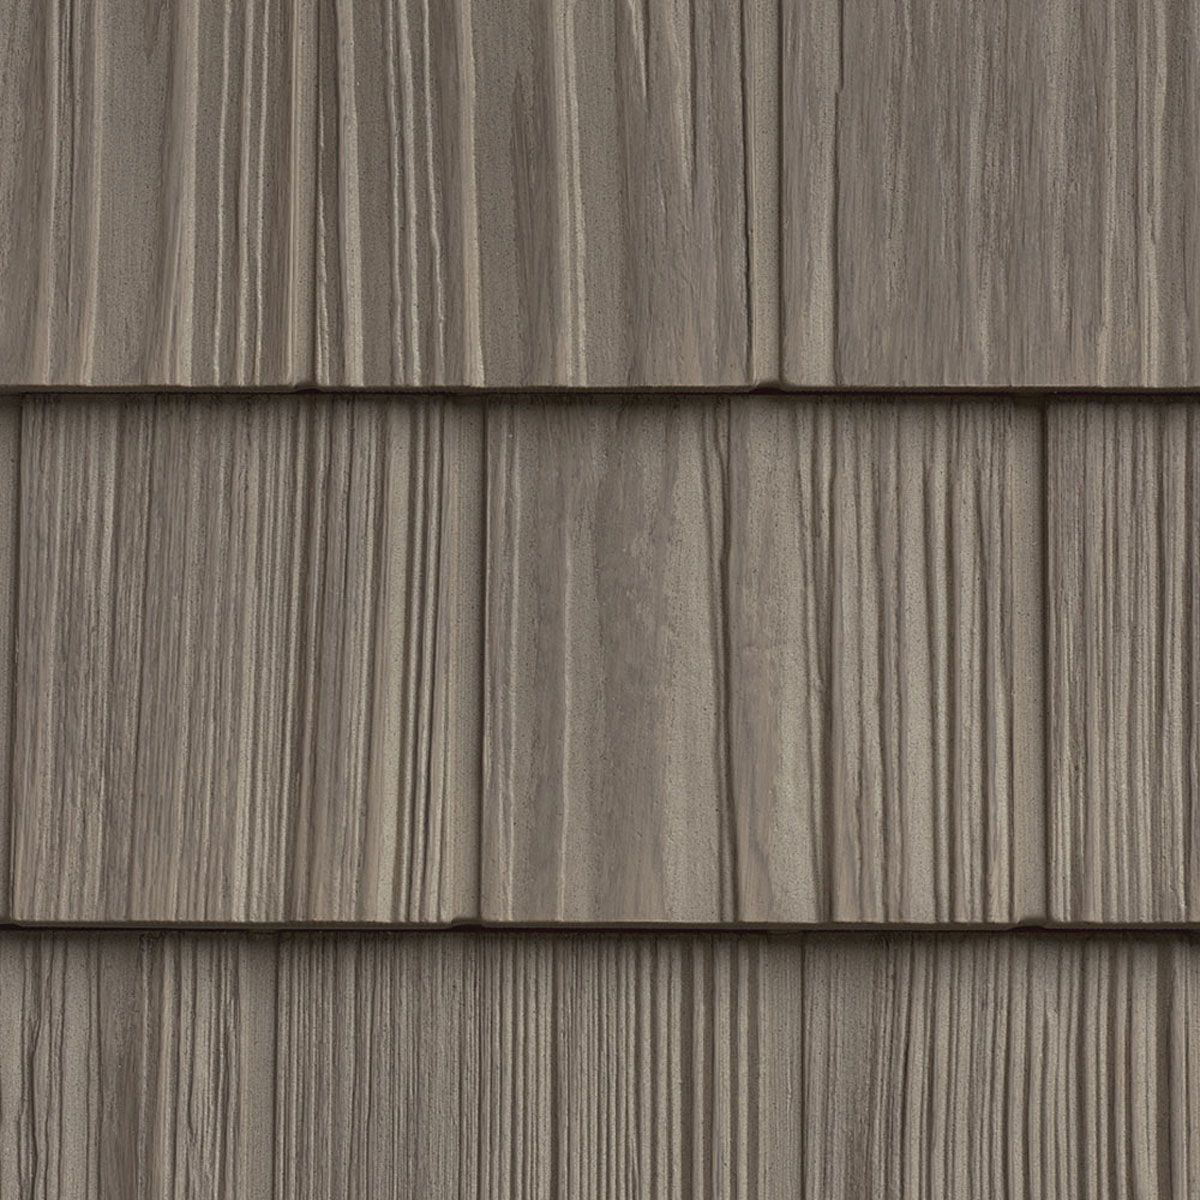 7 Inch W X 60 3 4 Inch L Exposure Vinyl Split Shakes 34 Panels Ctn 100 Sq Feet 820 Vintage Taupe With Images Vinyl Cedar Shake Siding Vinyl Siding Vinyl Shake Siding